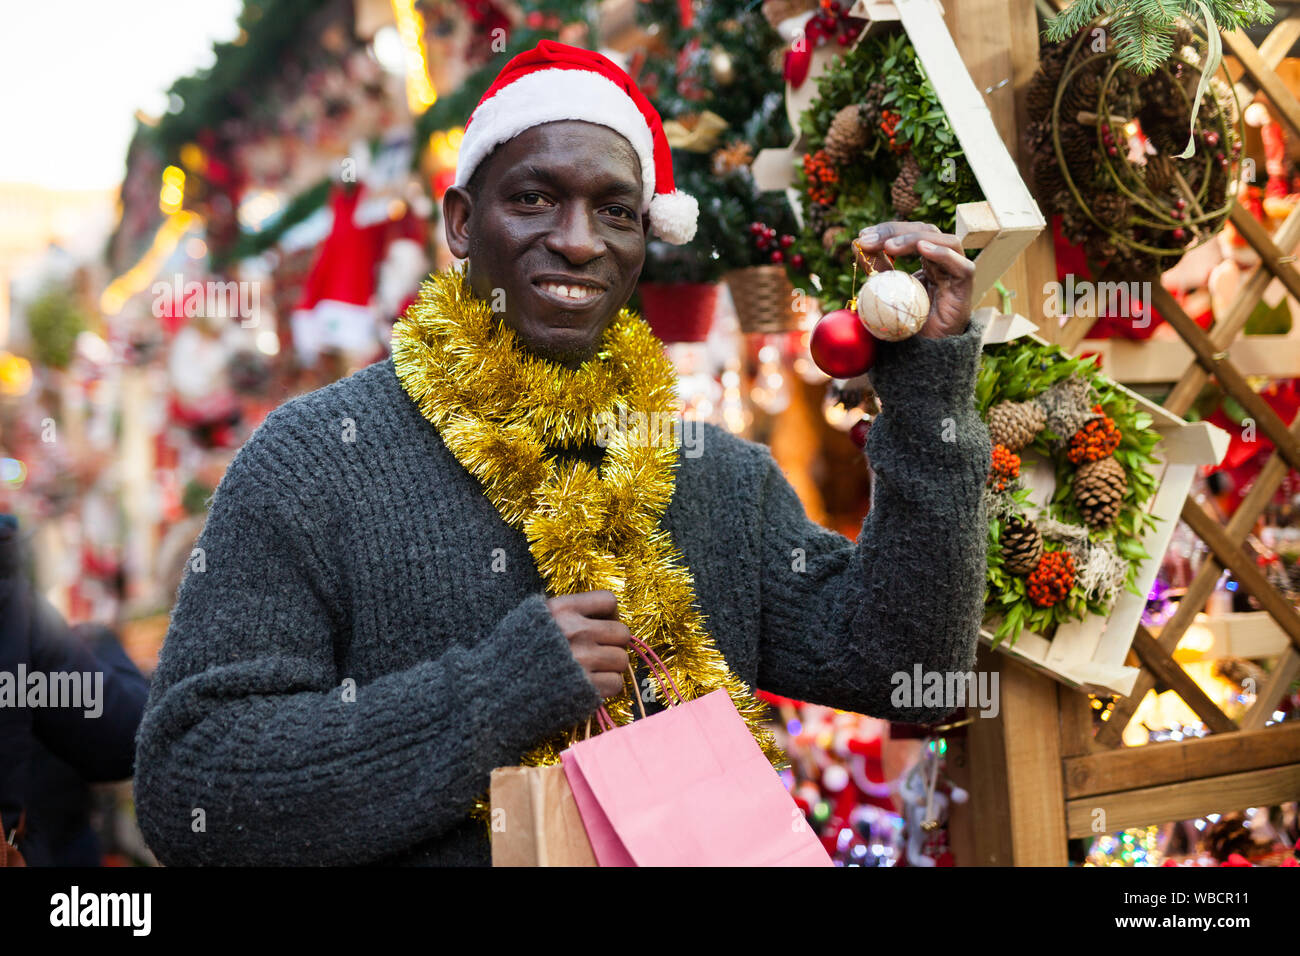 Christmas In Africa Traditions.Cheerful African American In Santa Hat Looking For New Year